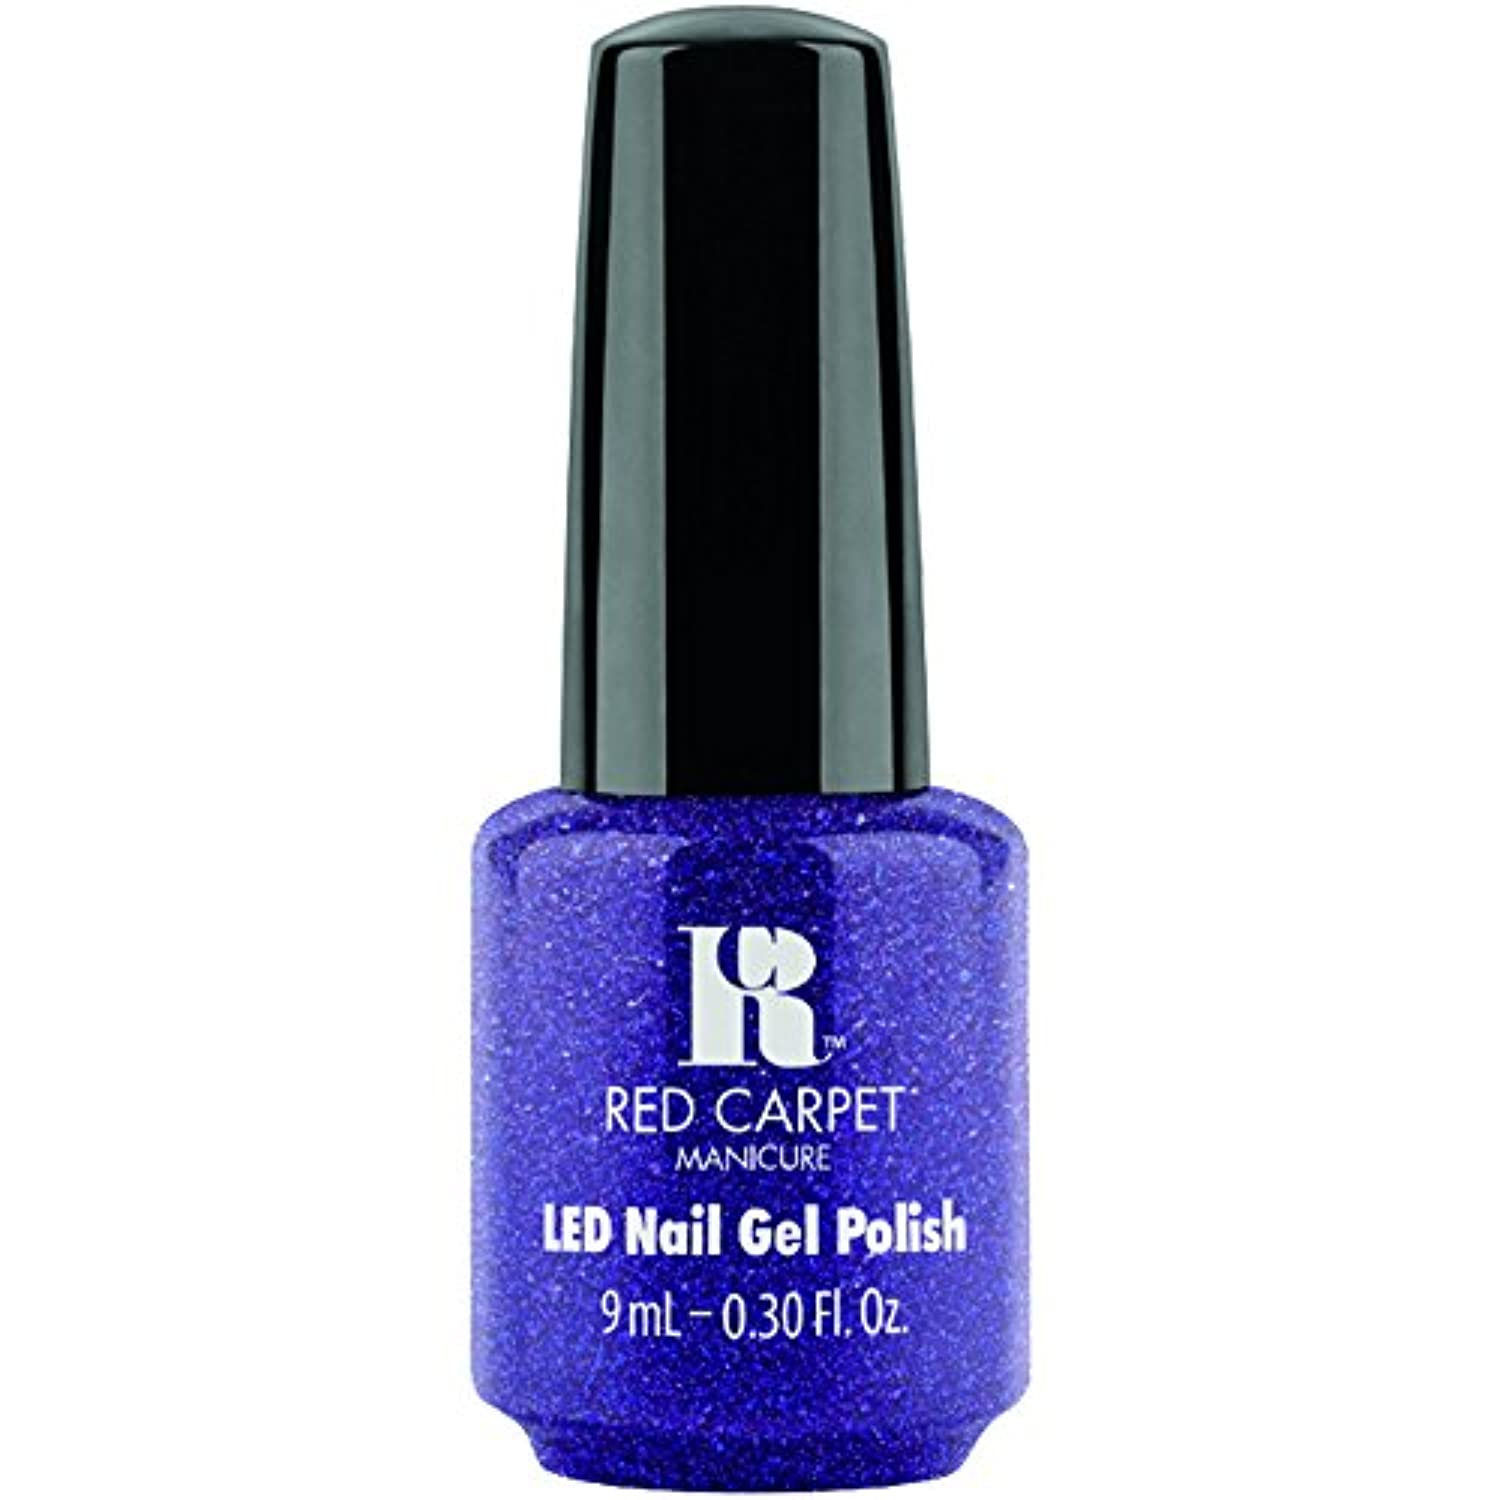 Red Carpet Manicure - LED Nail Gel Polish - Throw Some Glitter On It - 0.3oz / 9ml